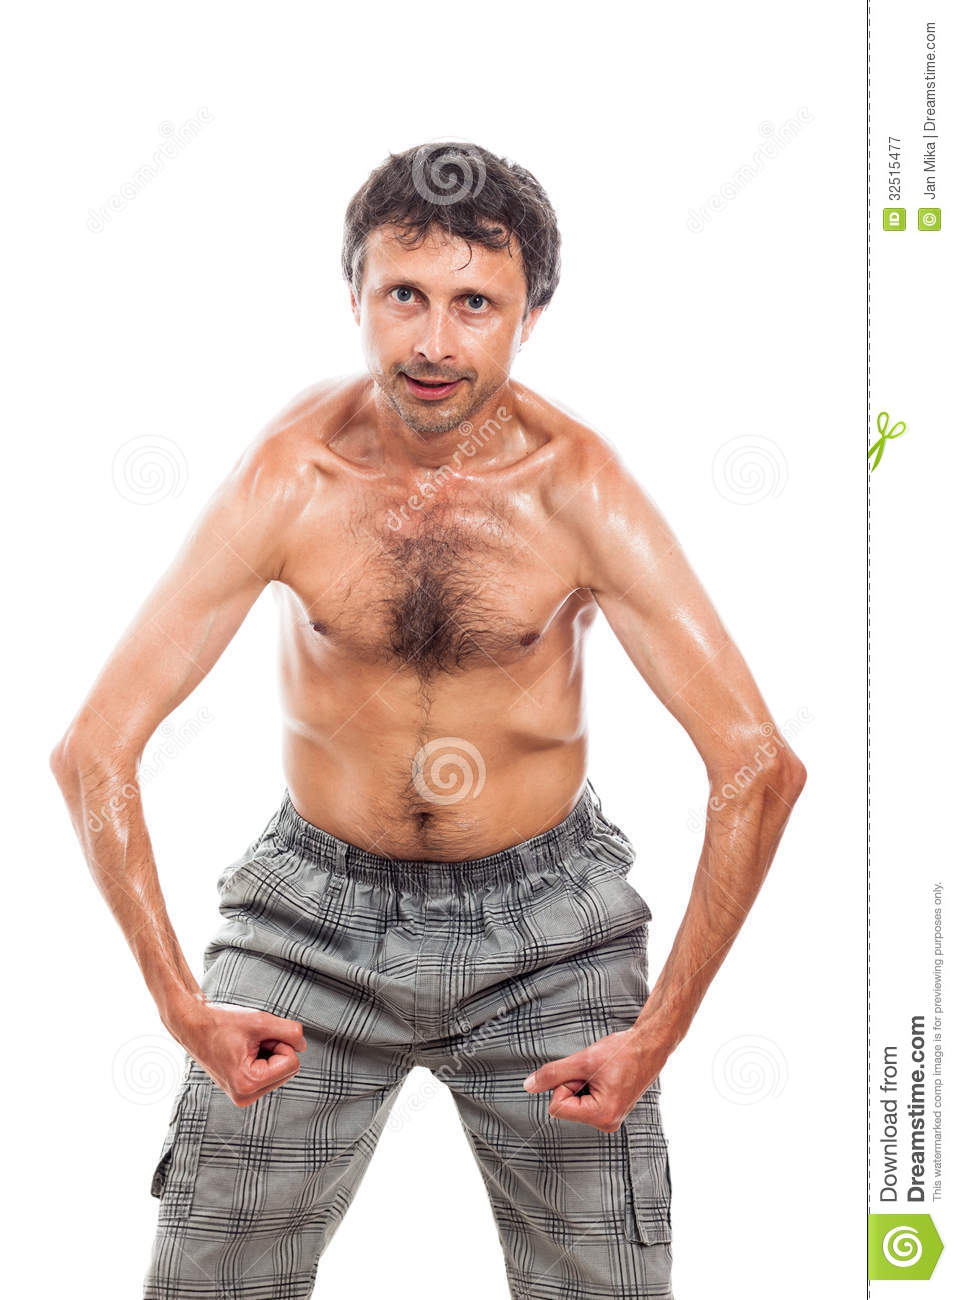 Funny shirtless man showing his body, isolated on white background.